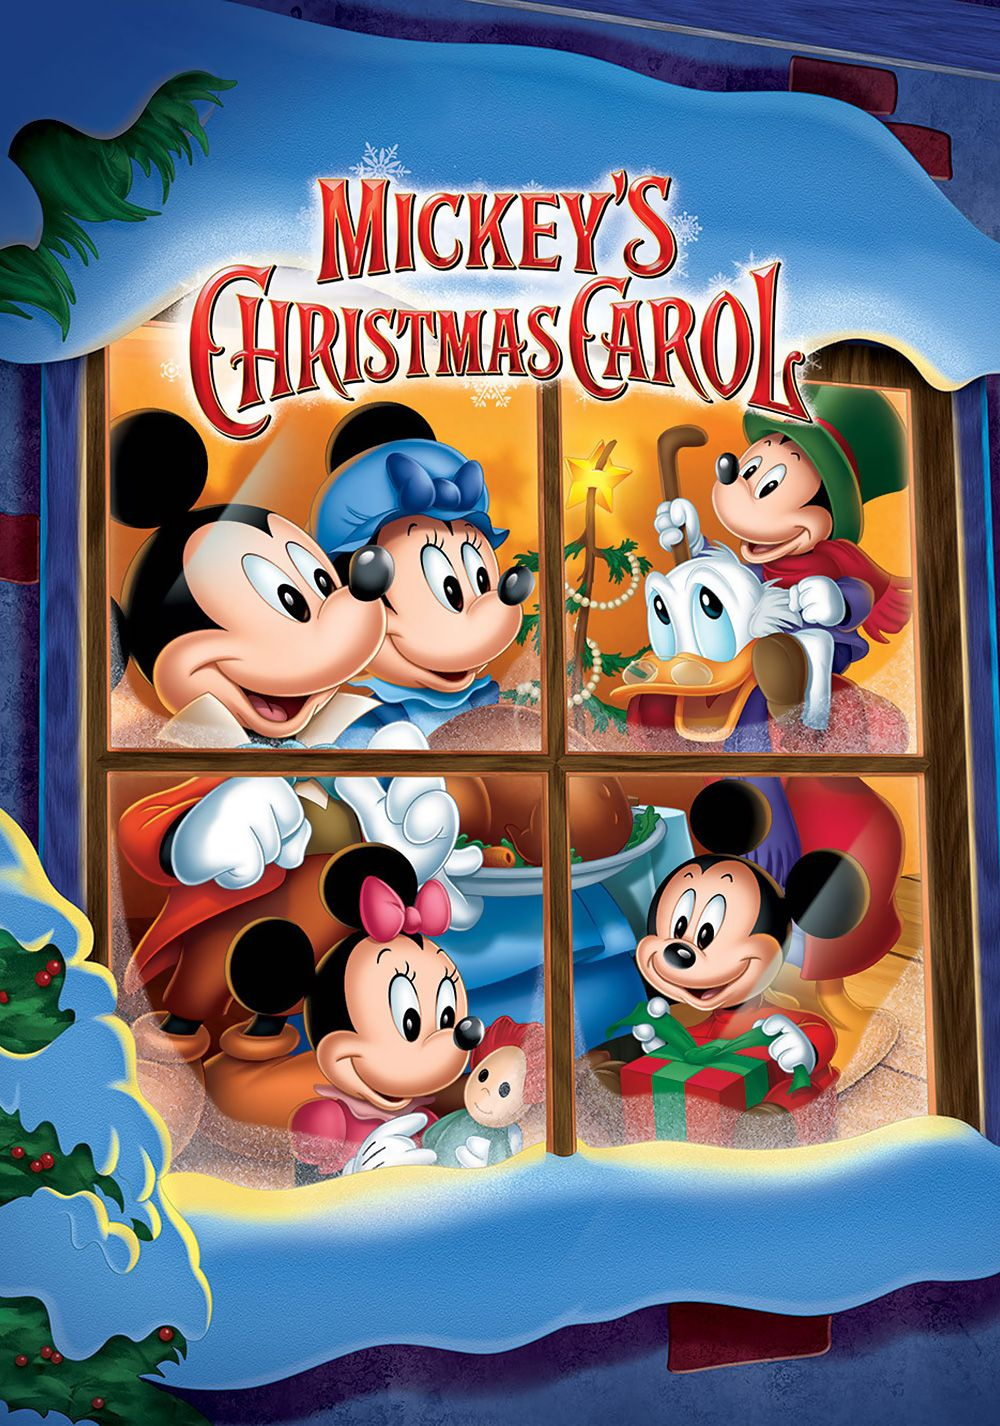 mickeys christmas carol anniversary special edition blu raydvd digital copy - Mickeys Christmas Carol Blu Ray